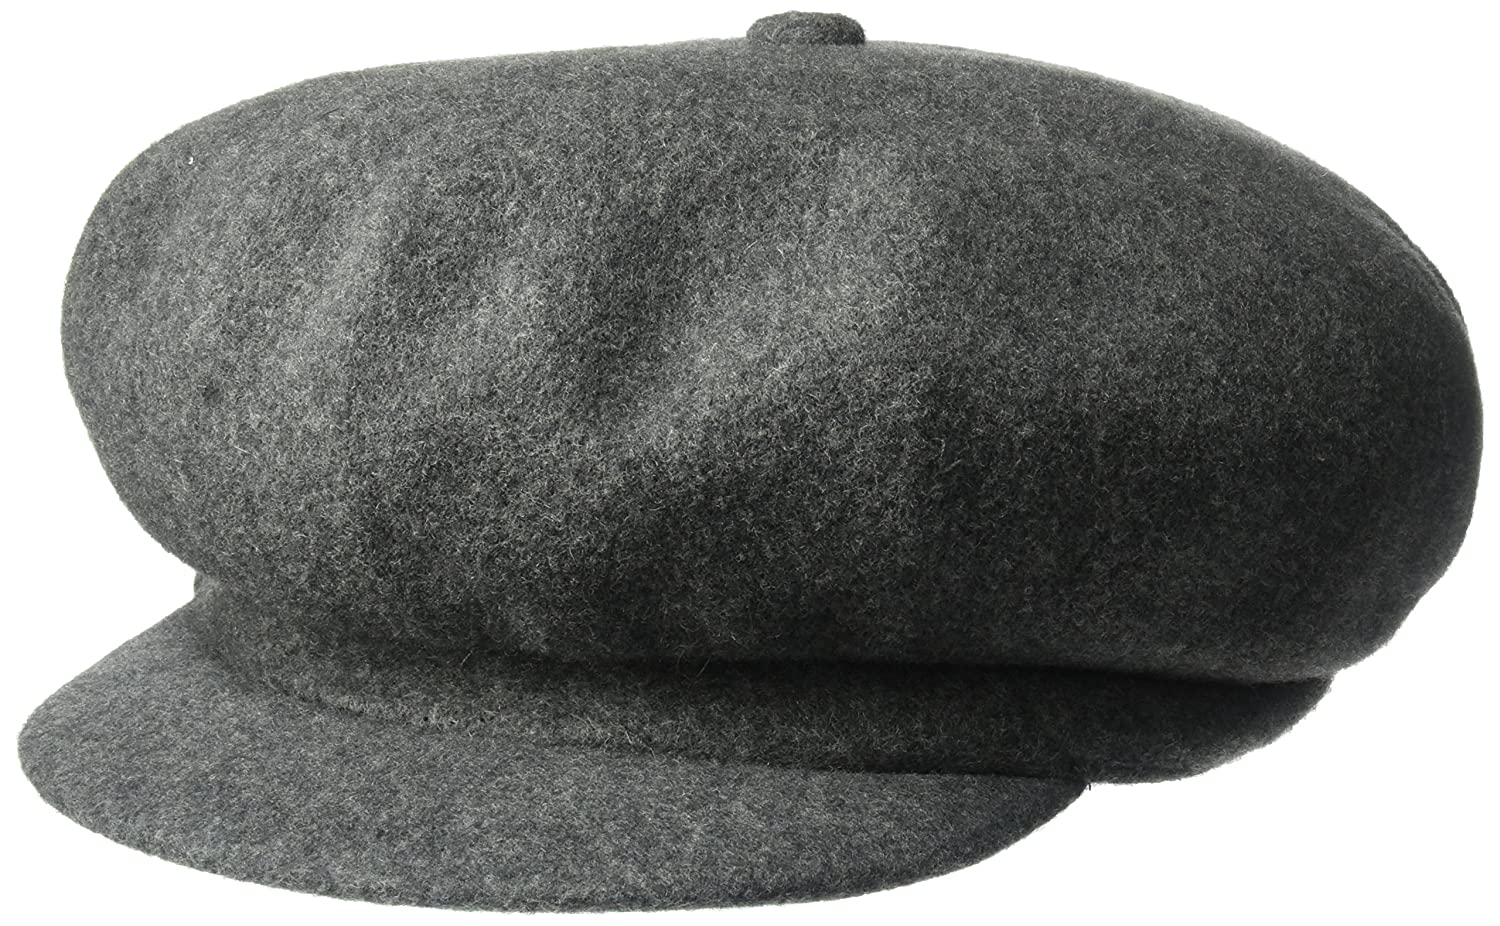 Kangol Men s Wool Spitfire Cap at Amazon Men s Clothing store  Newsboy Caps c675f2a4c3b0